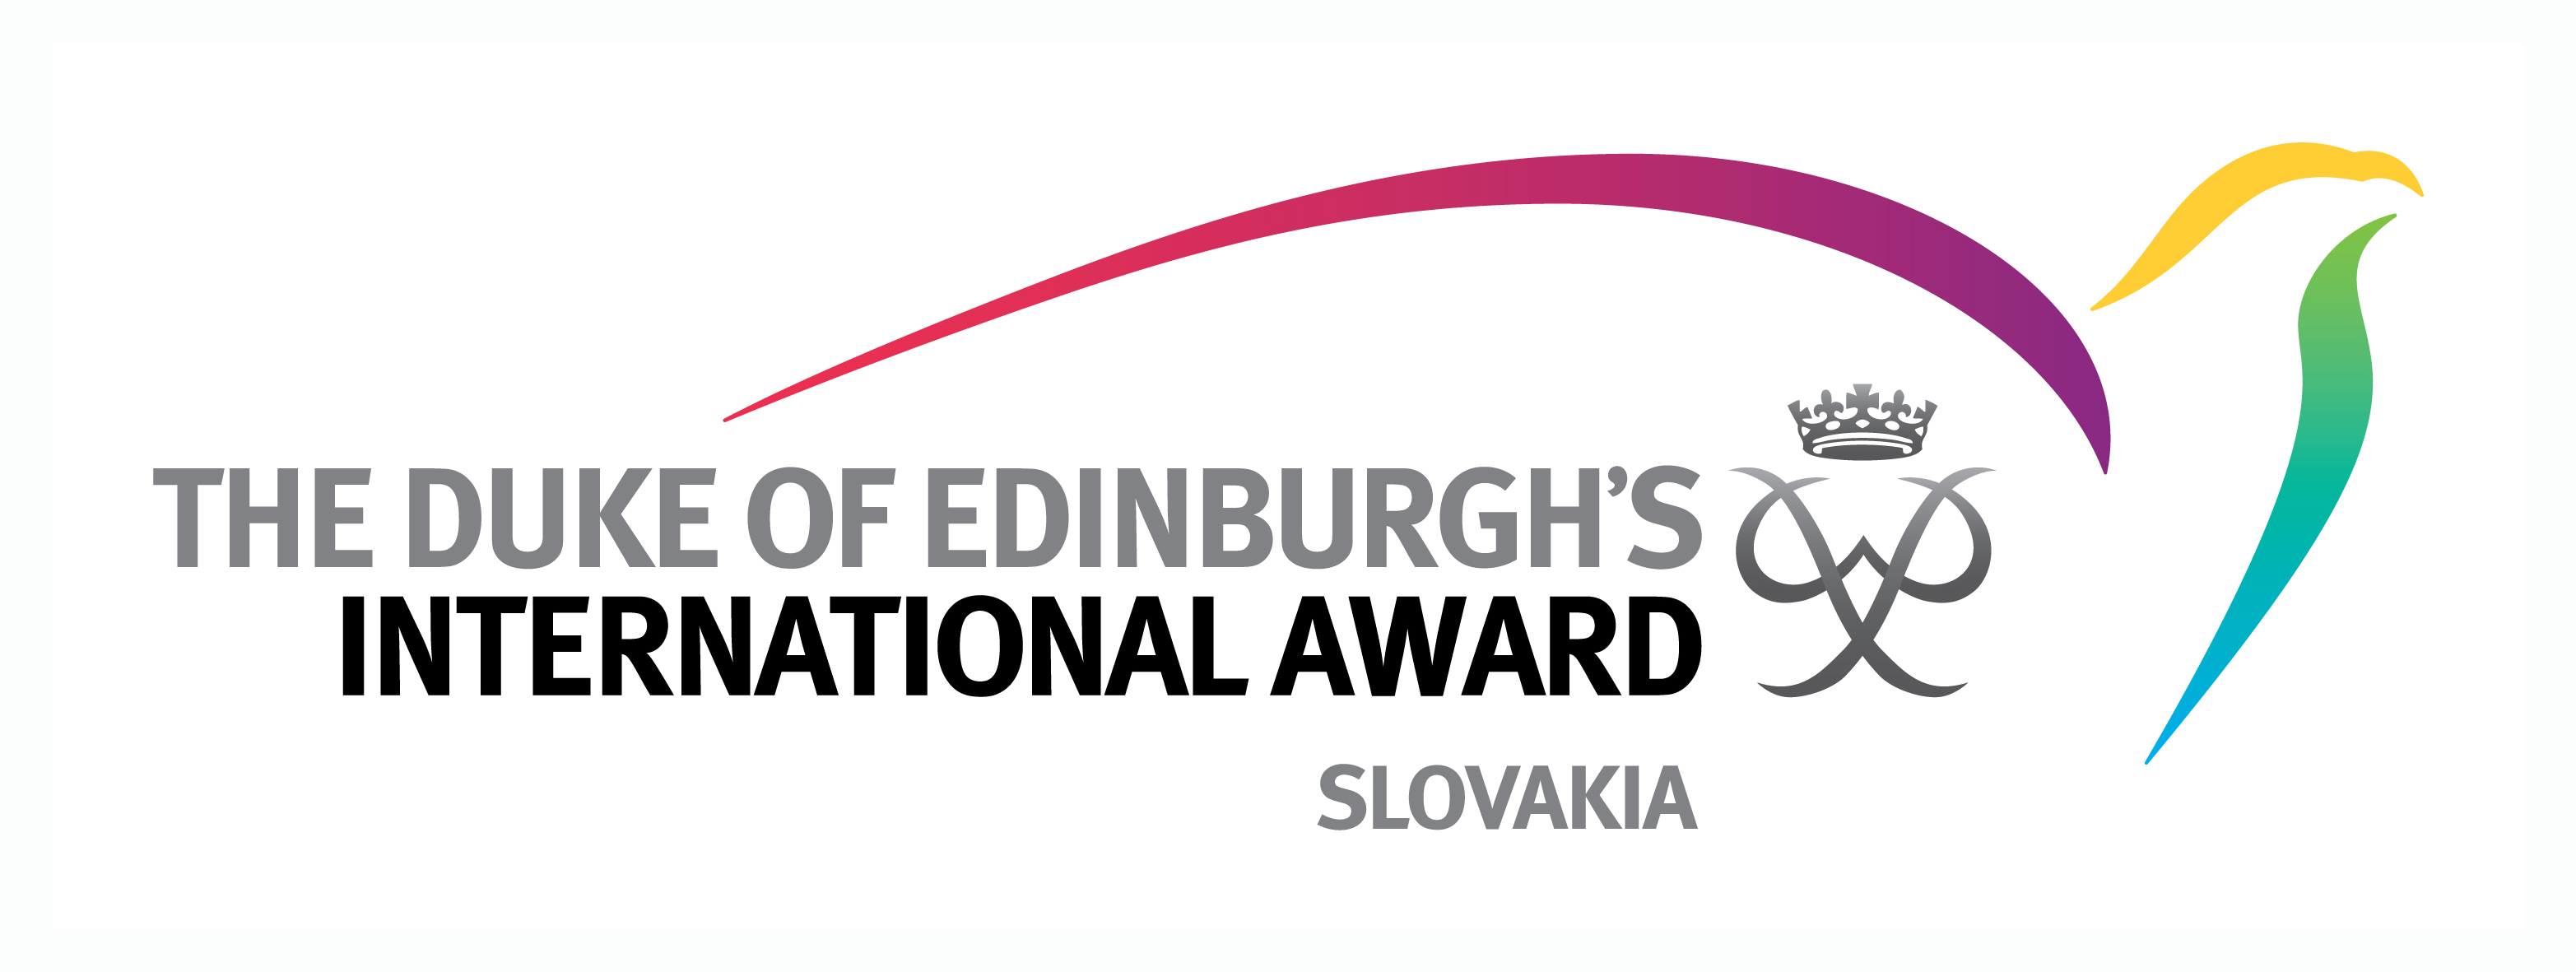 The Duke of Edinburgh's International Award Slovensko, o.z.